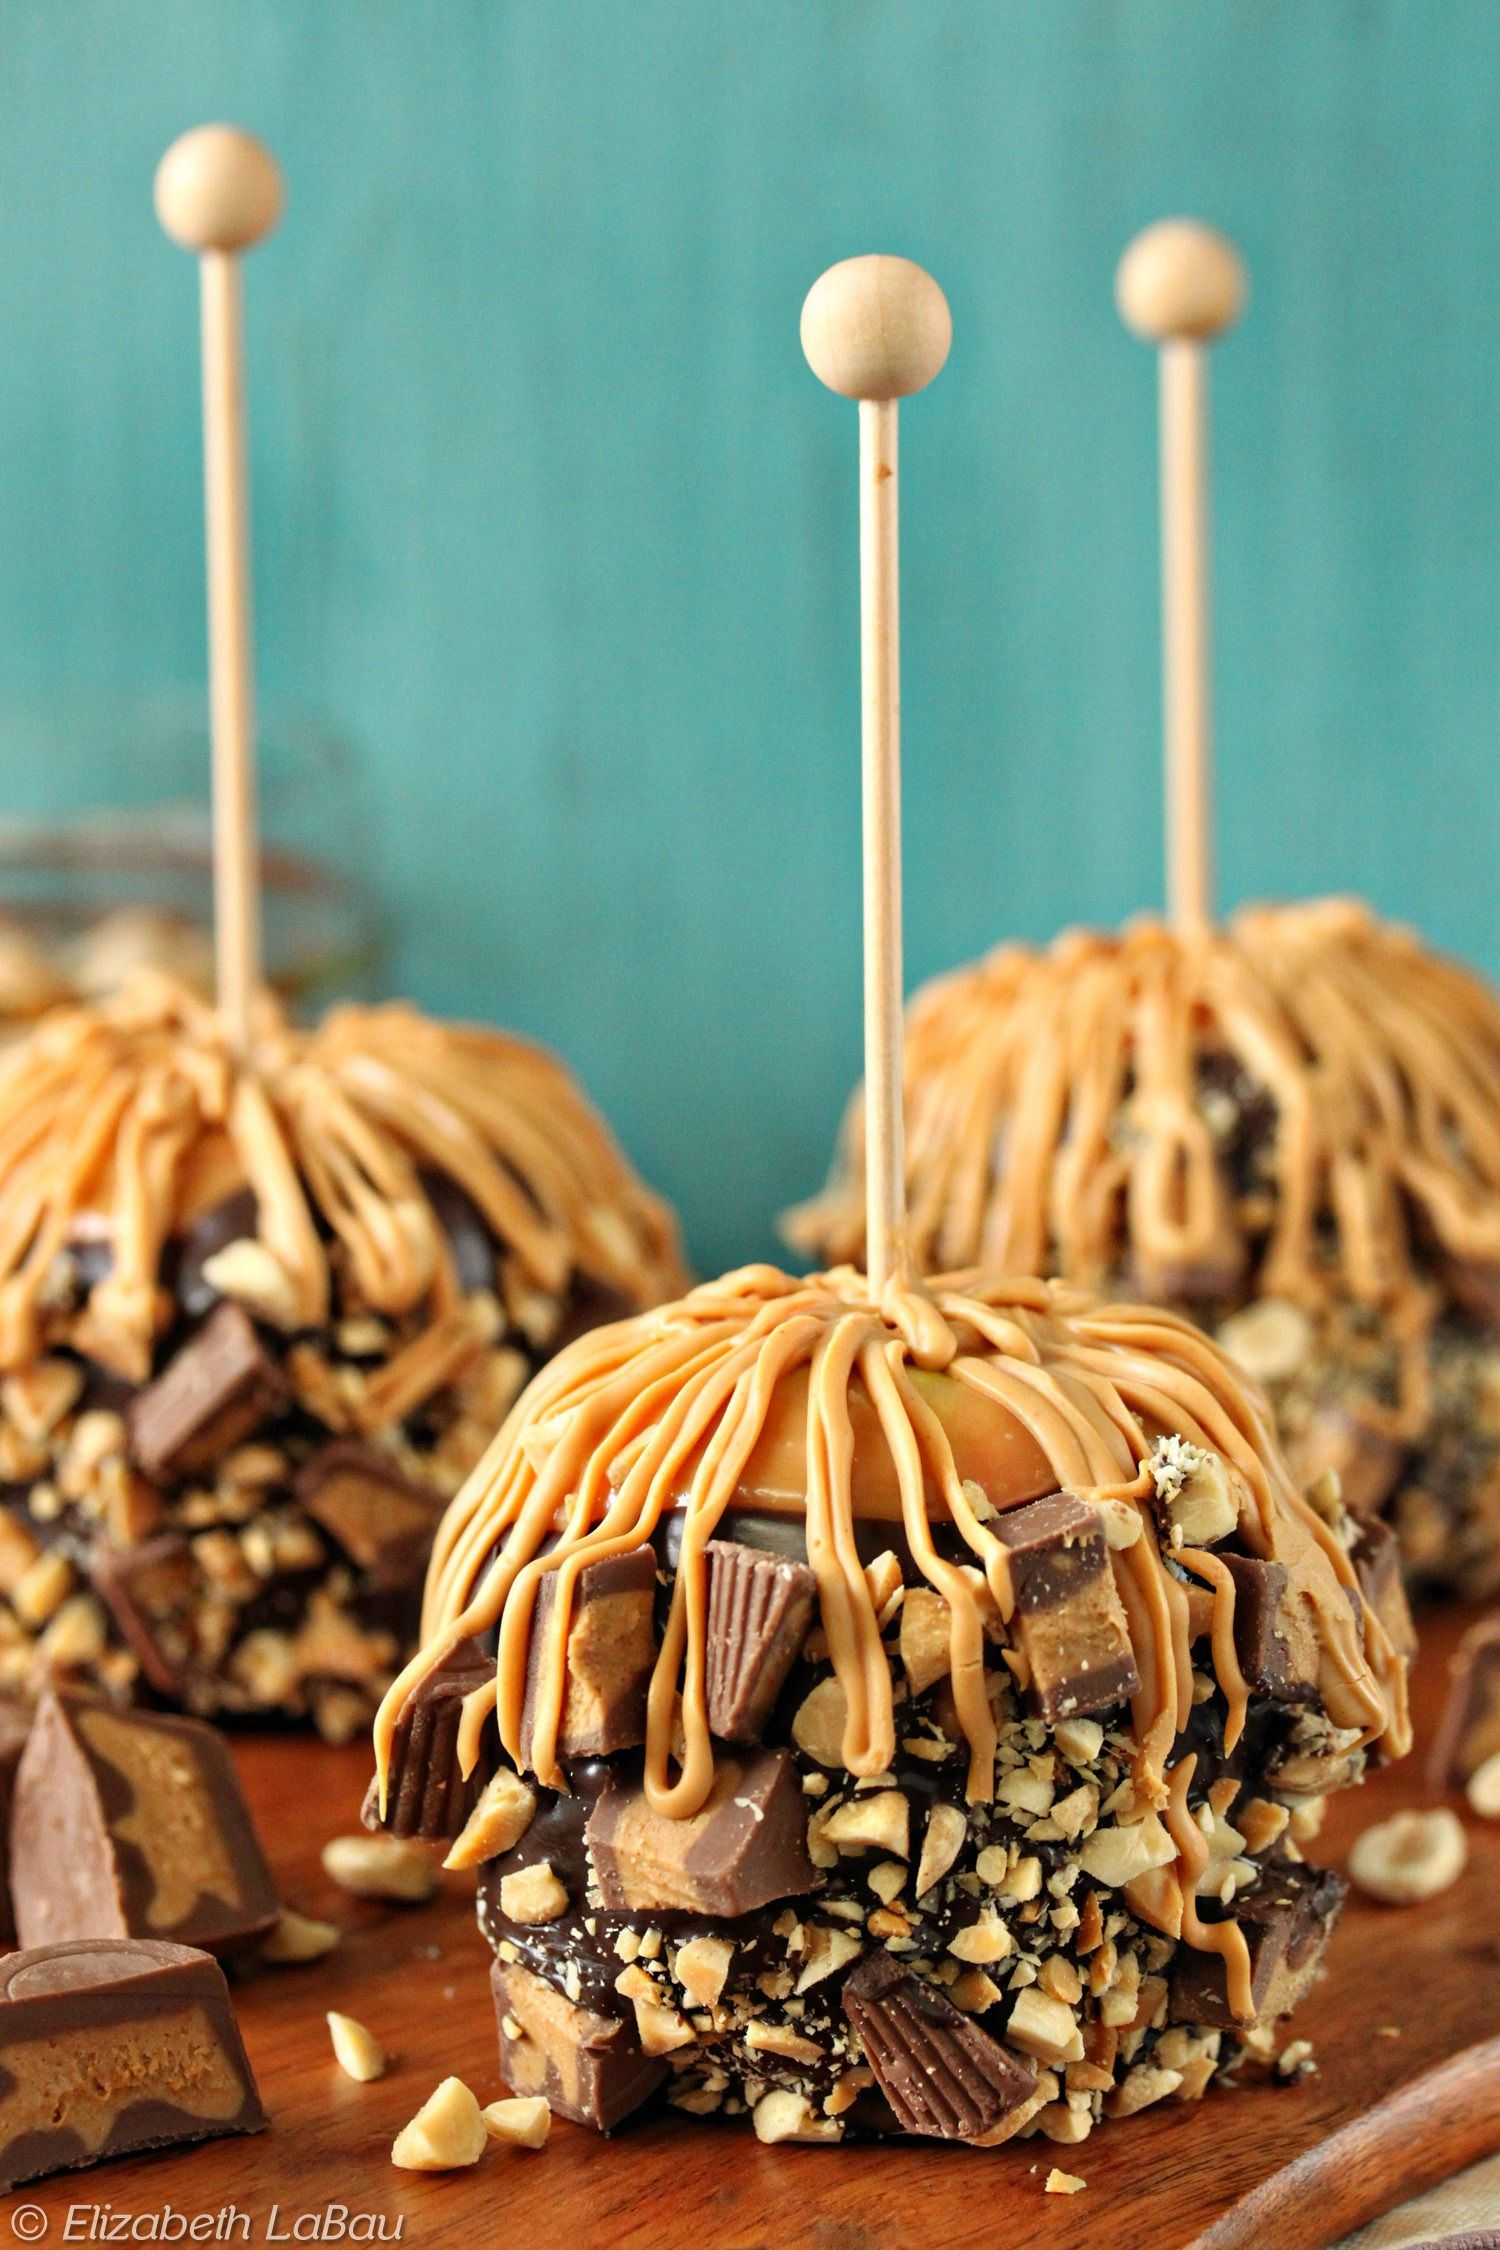 Peanut Butter Caramel Apples With Chocolate and Peanut